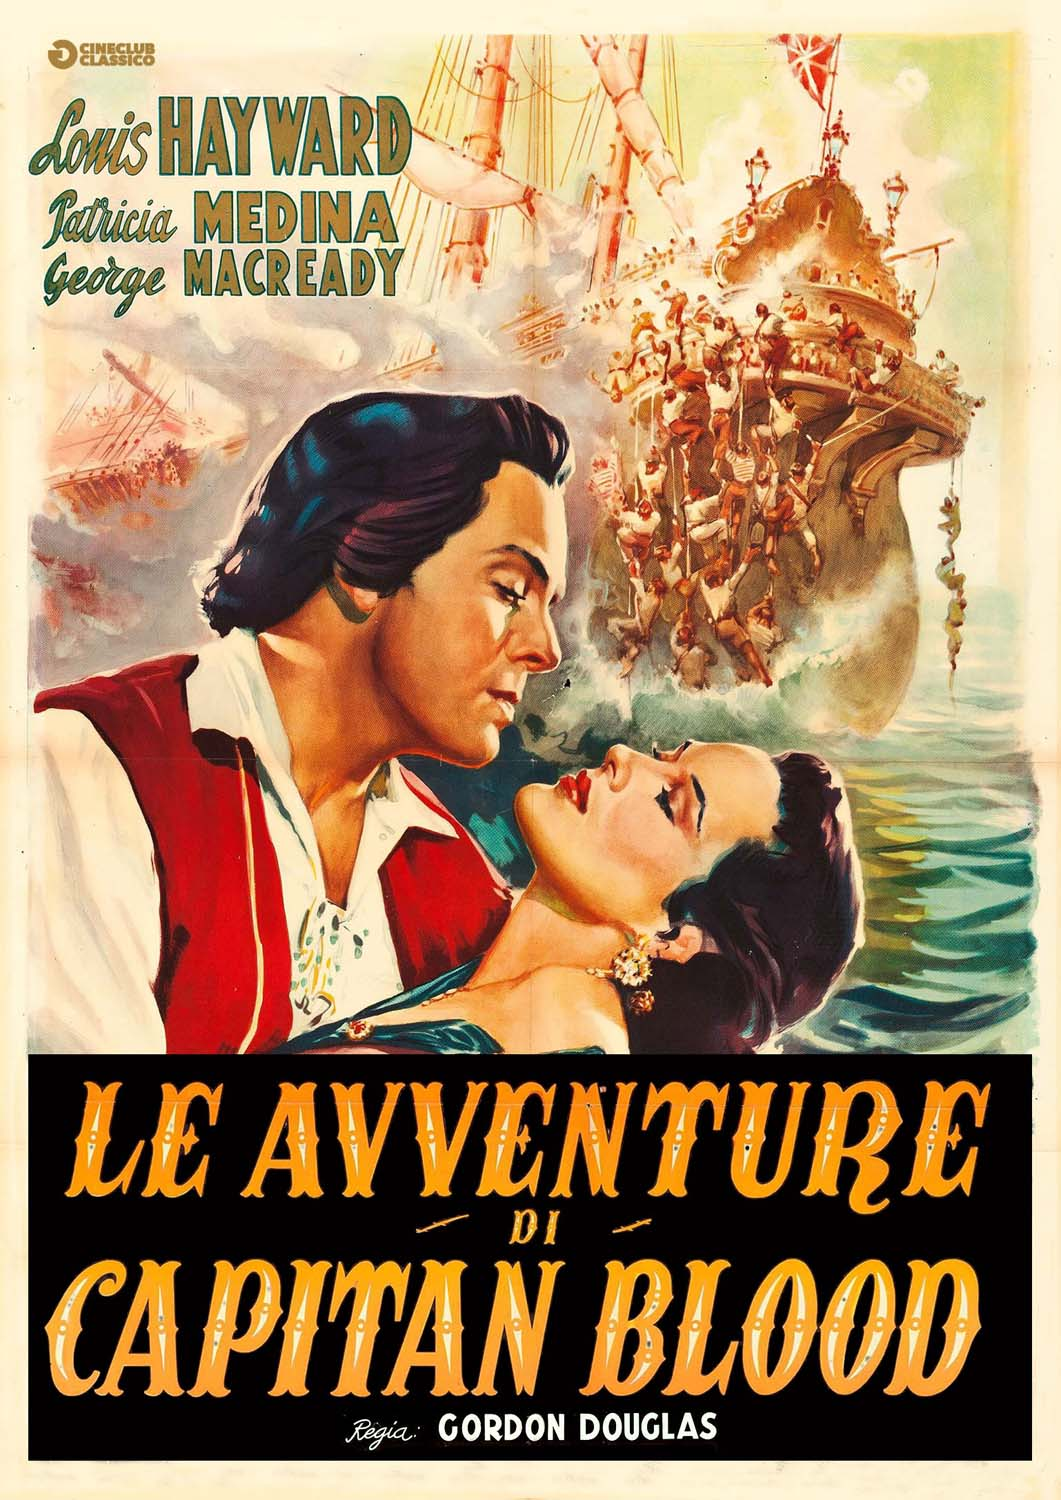 LE AVVENTURE DI CAPITAN BLOOD (DVD)